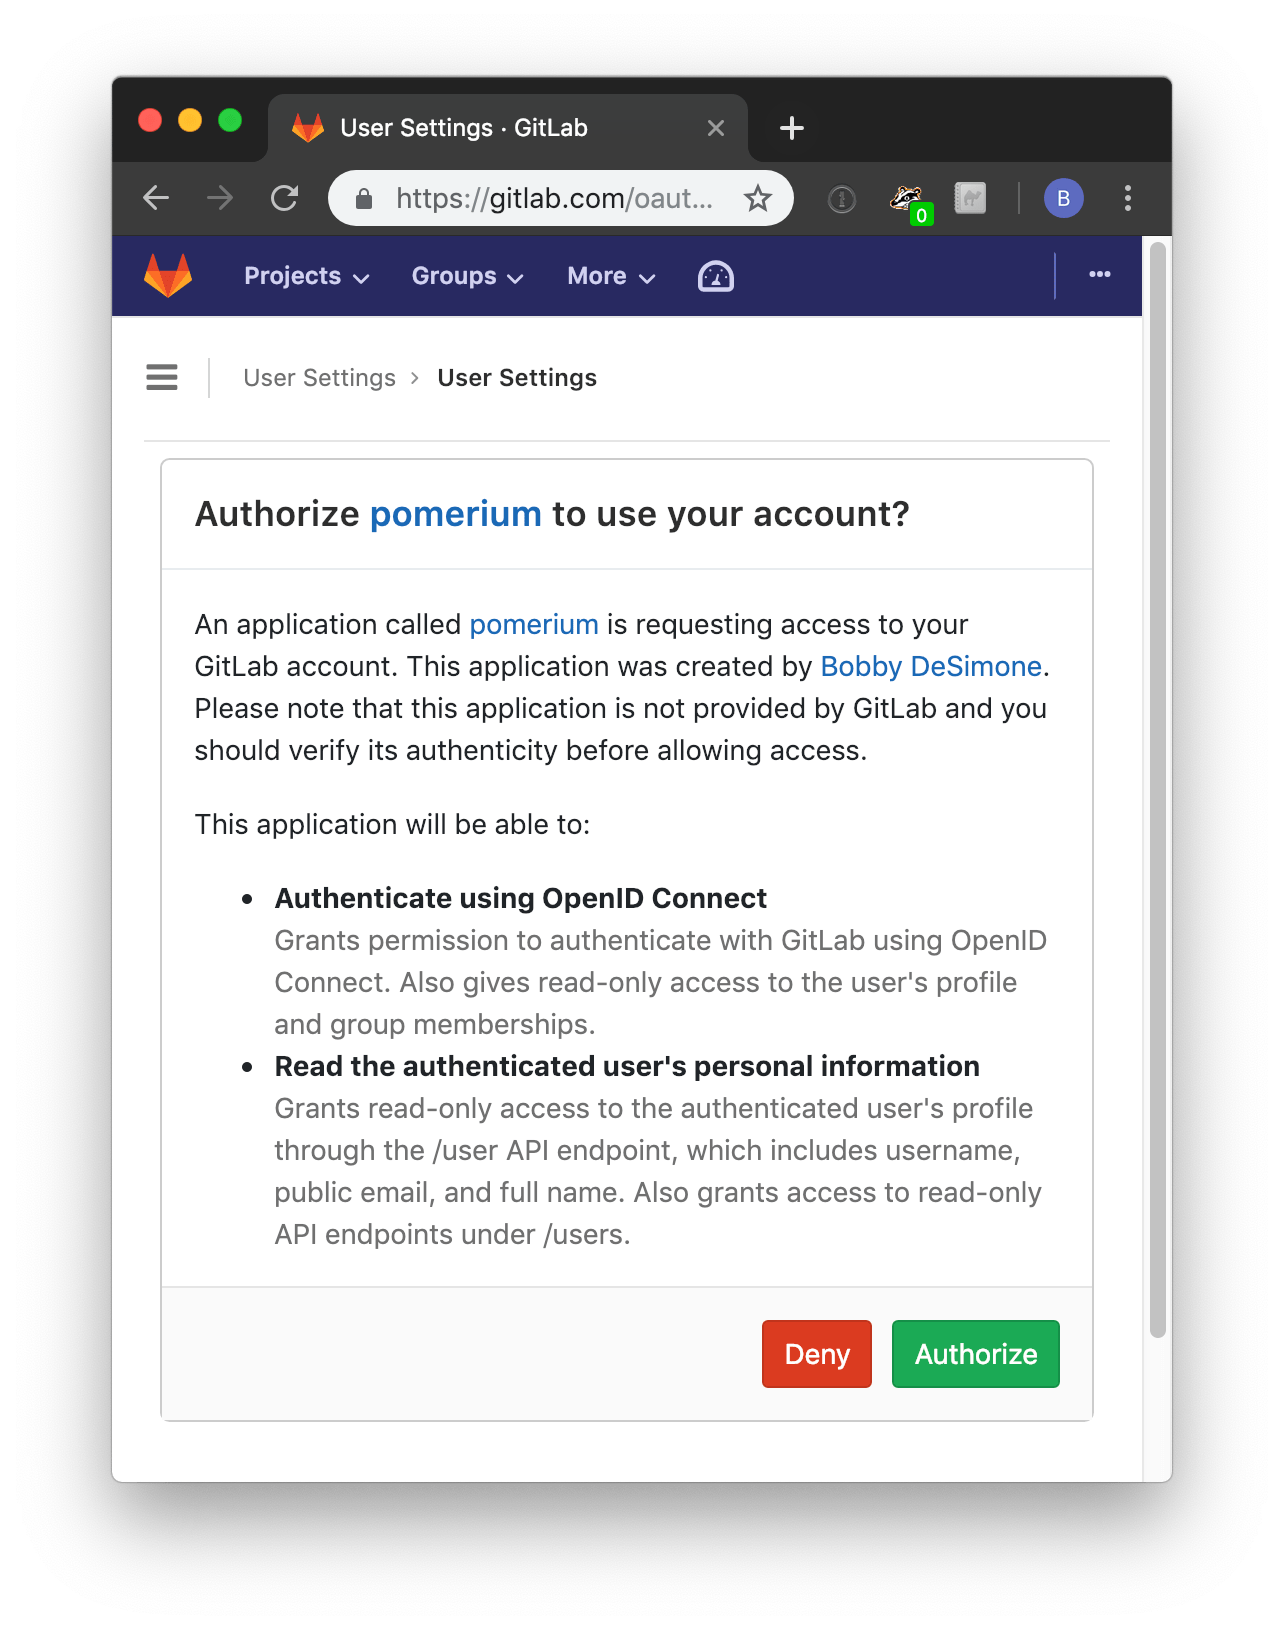 gitlab access authorization screen